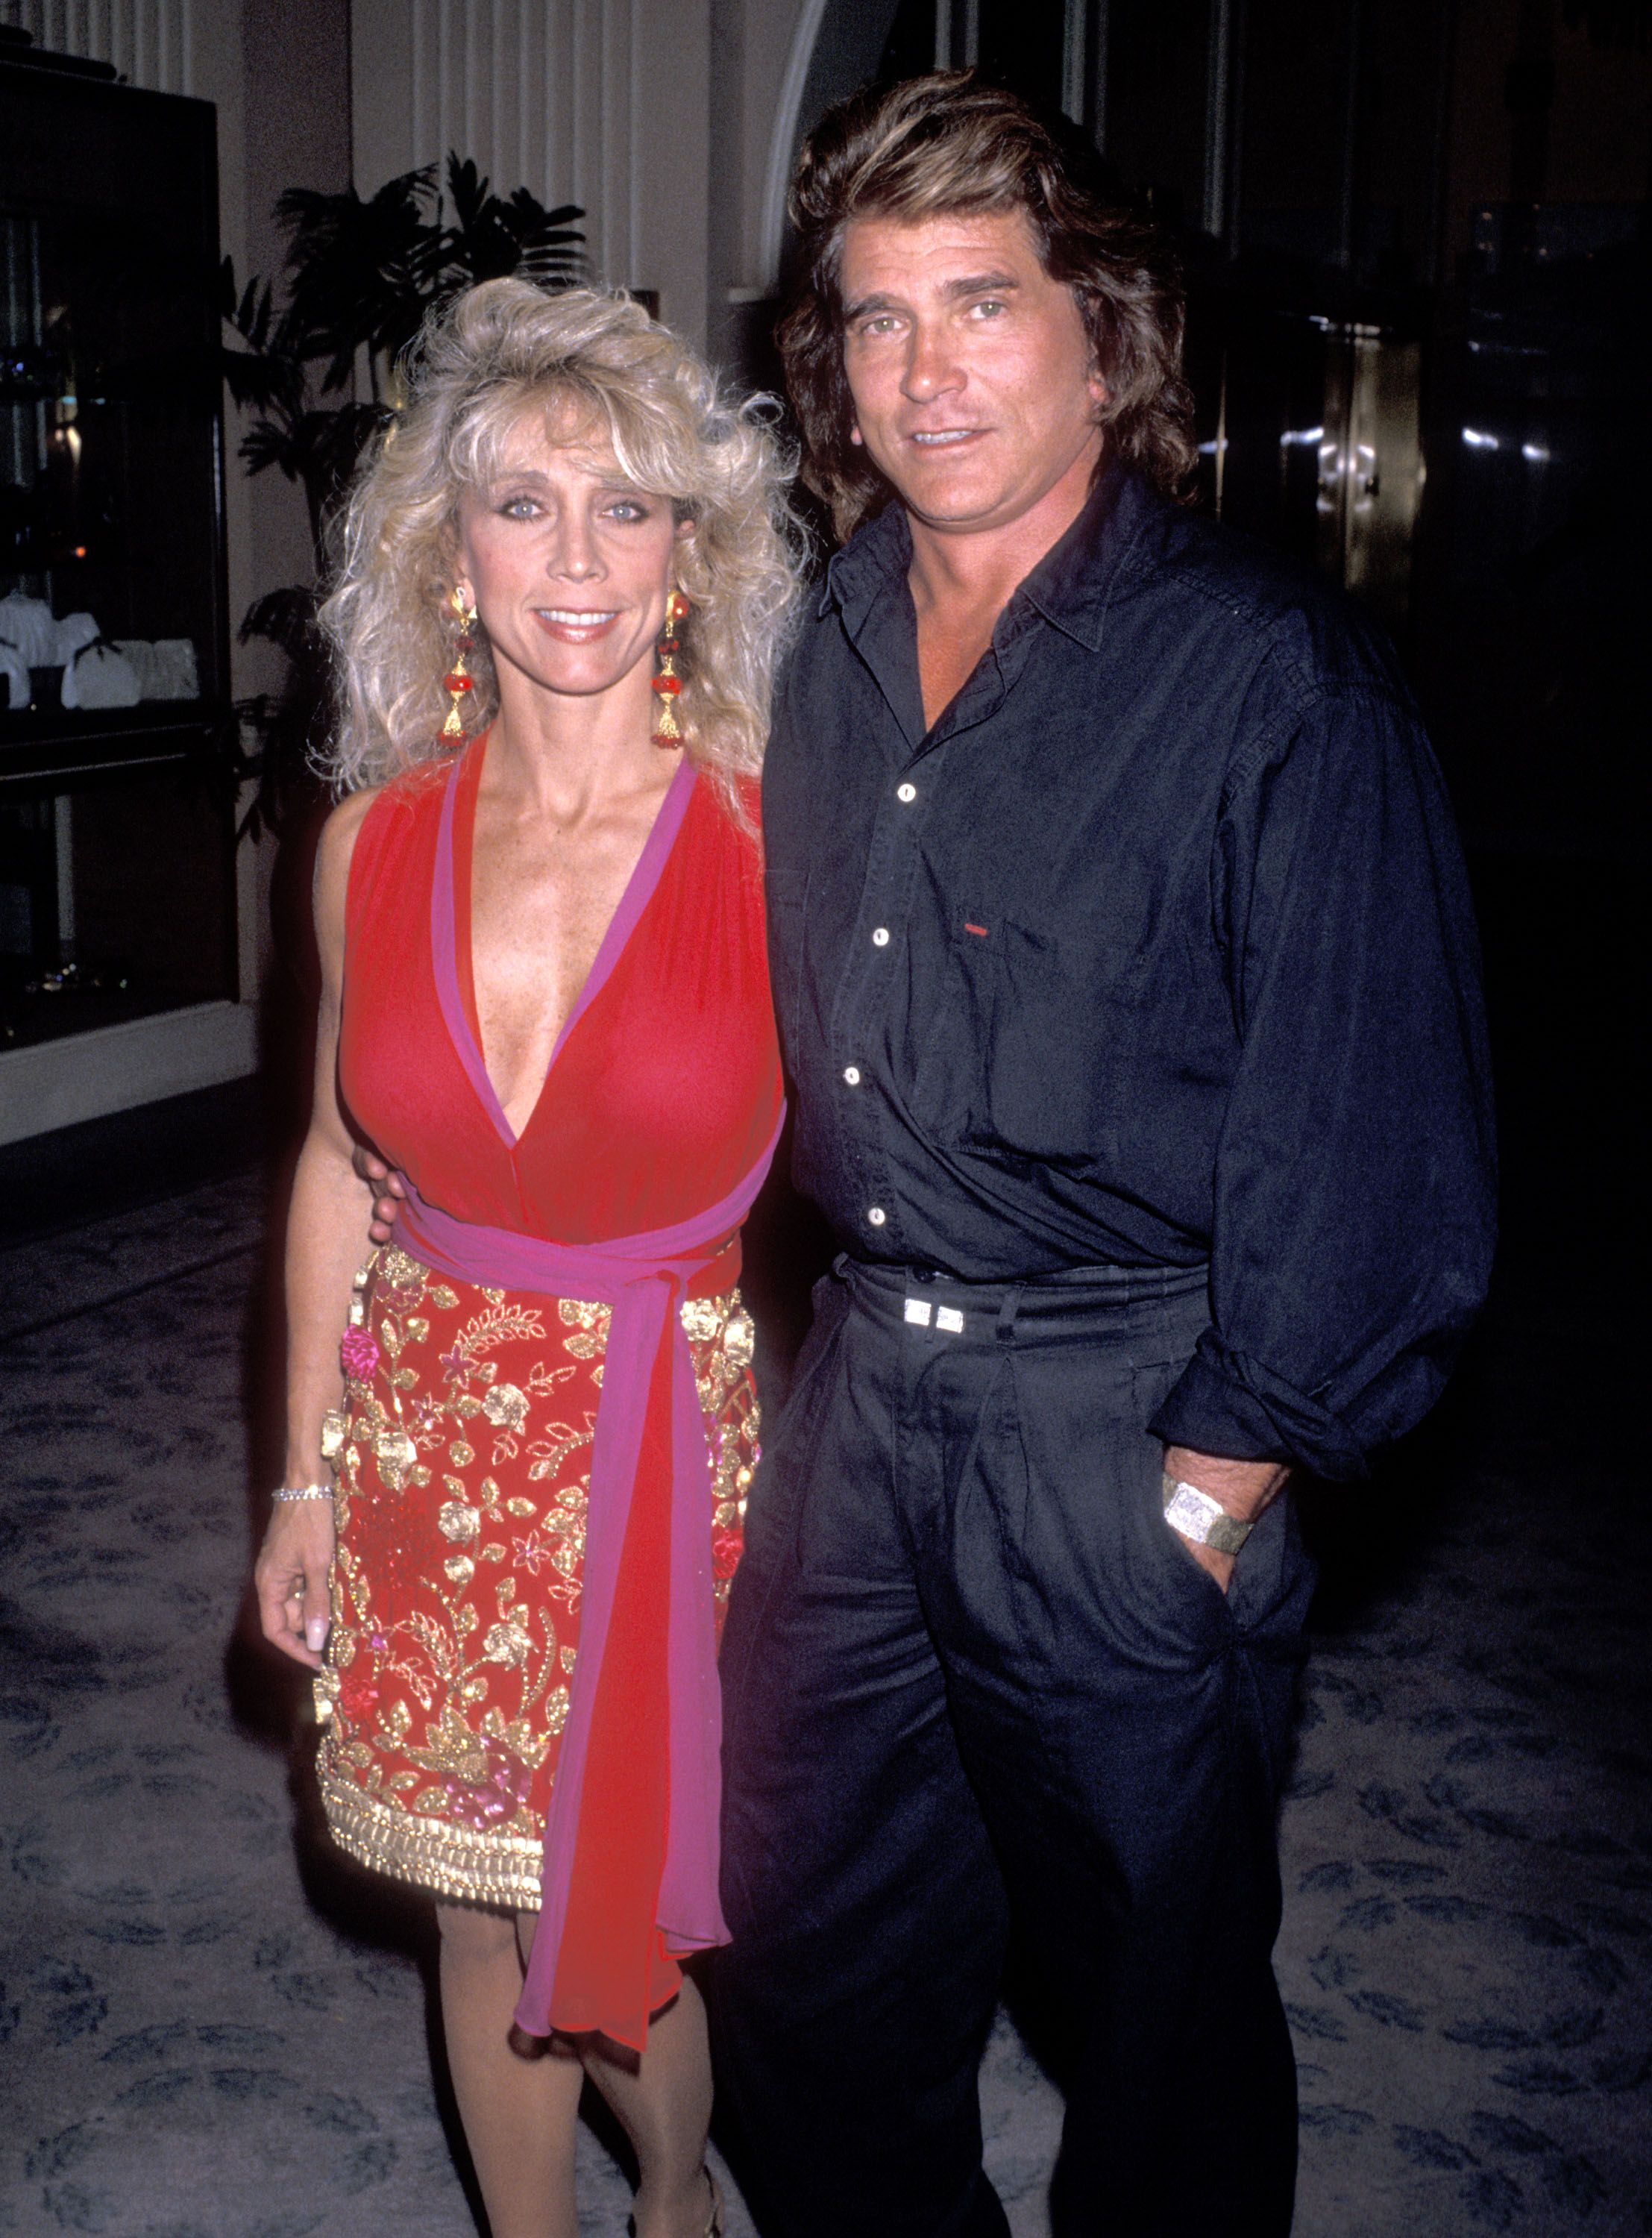 Michael Landon and wife Cindy Landon attend the National Down Syndrome Congress' Third Annual Michael Landon Celebrity Gala in 1989 | Source: Getty Images